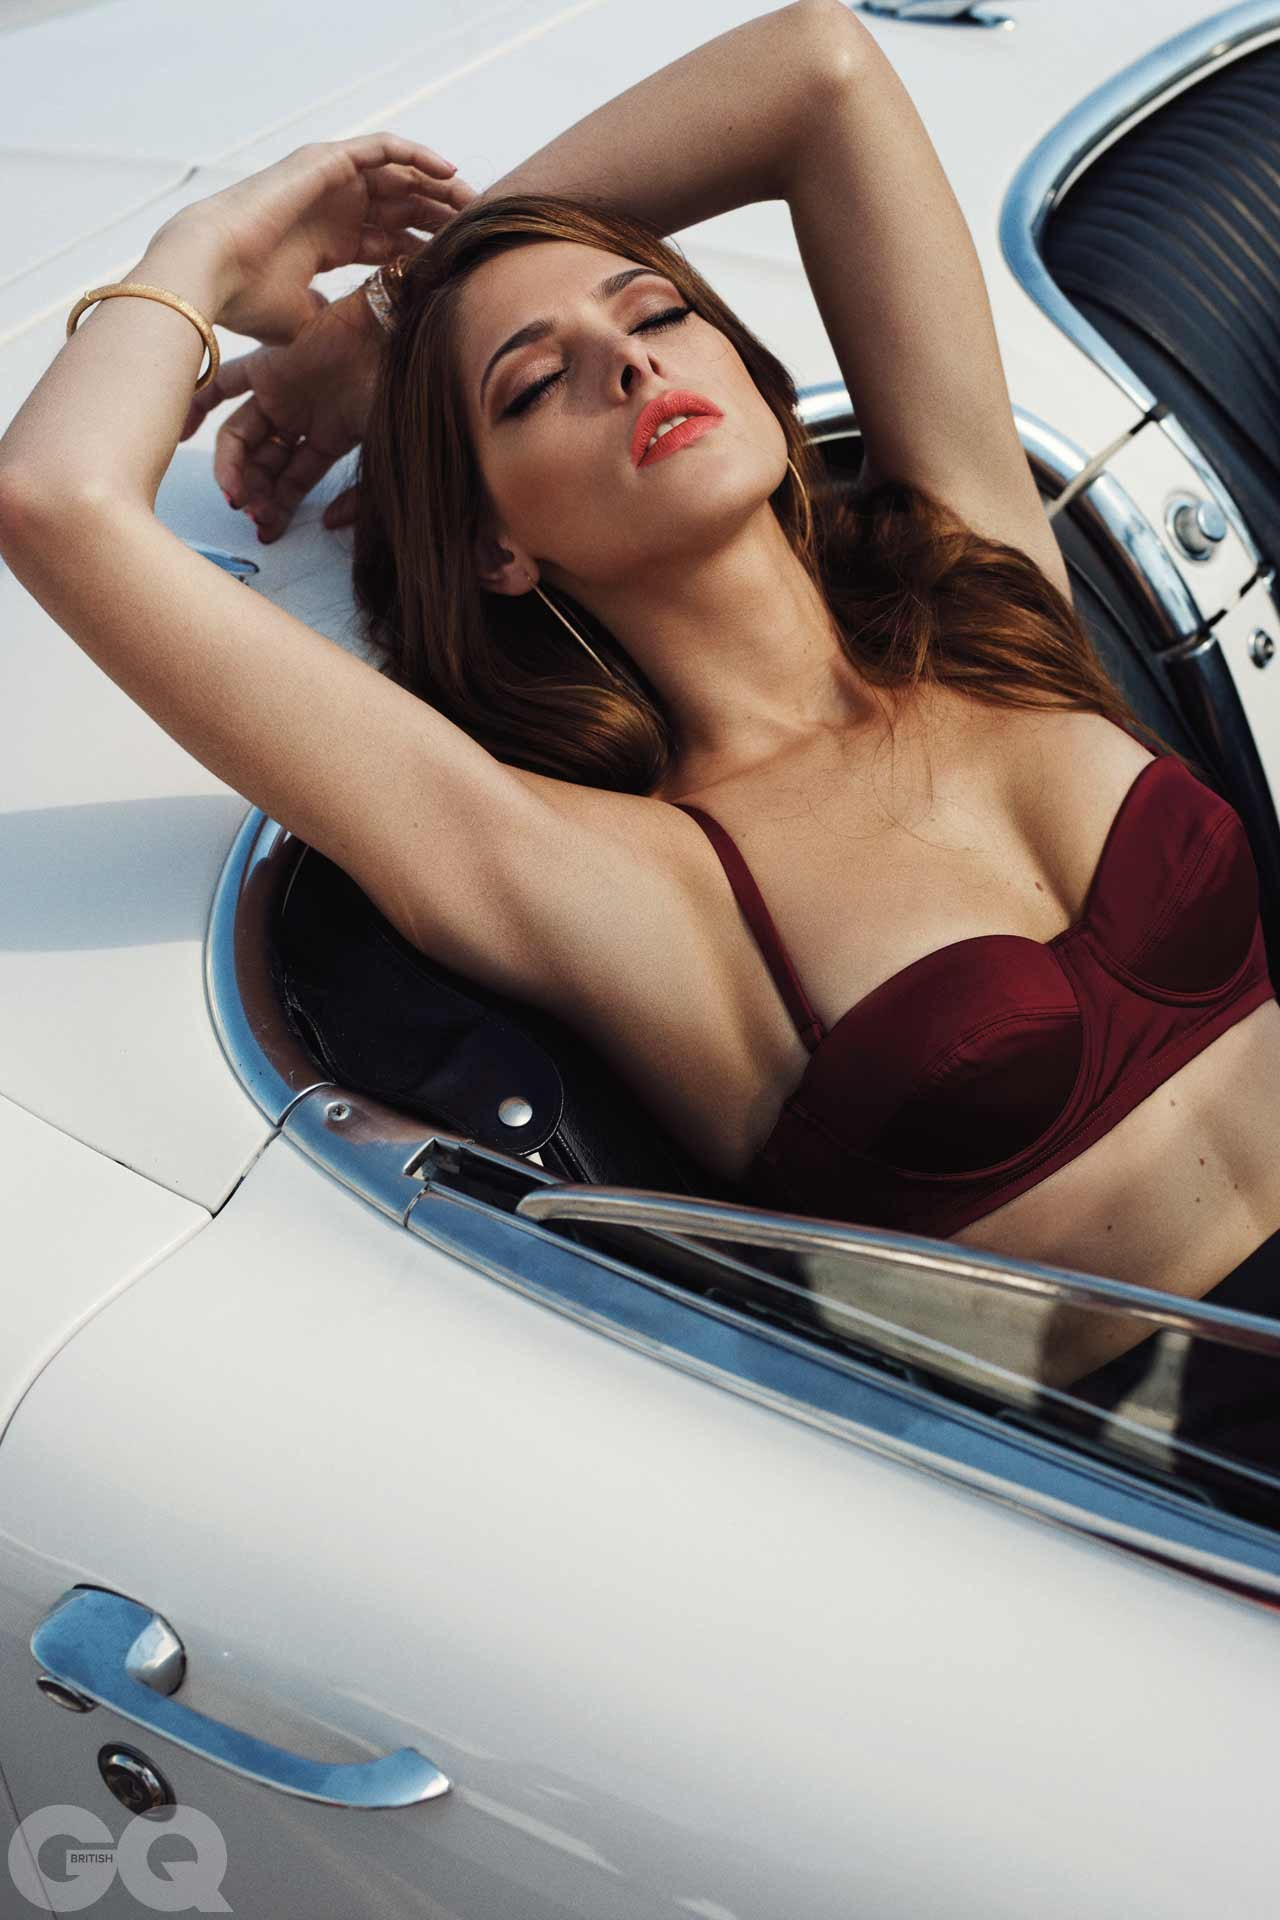 Actress Ashley Greene From Twilight Photography By Benny Horne For GQ Magazine